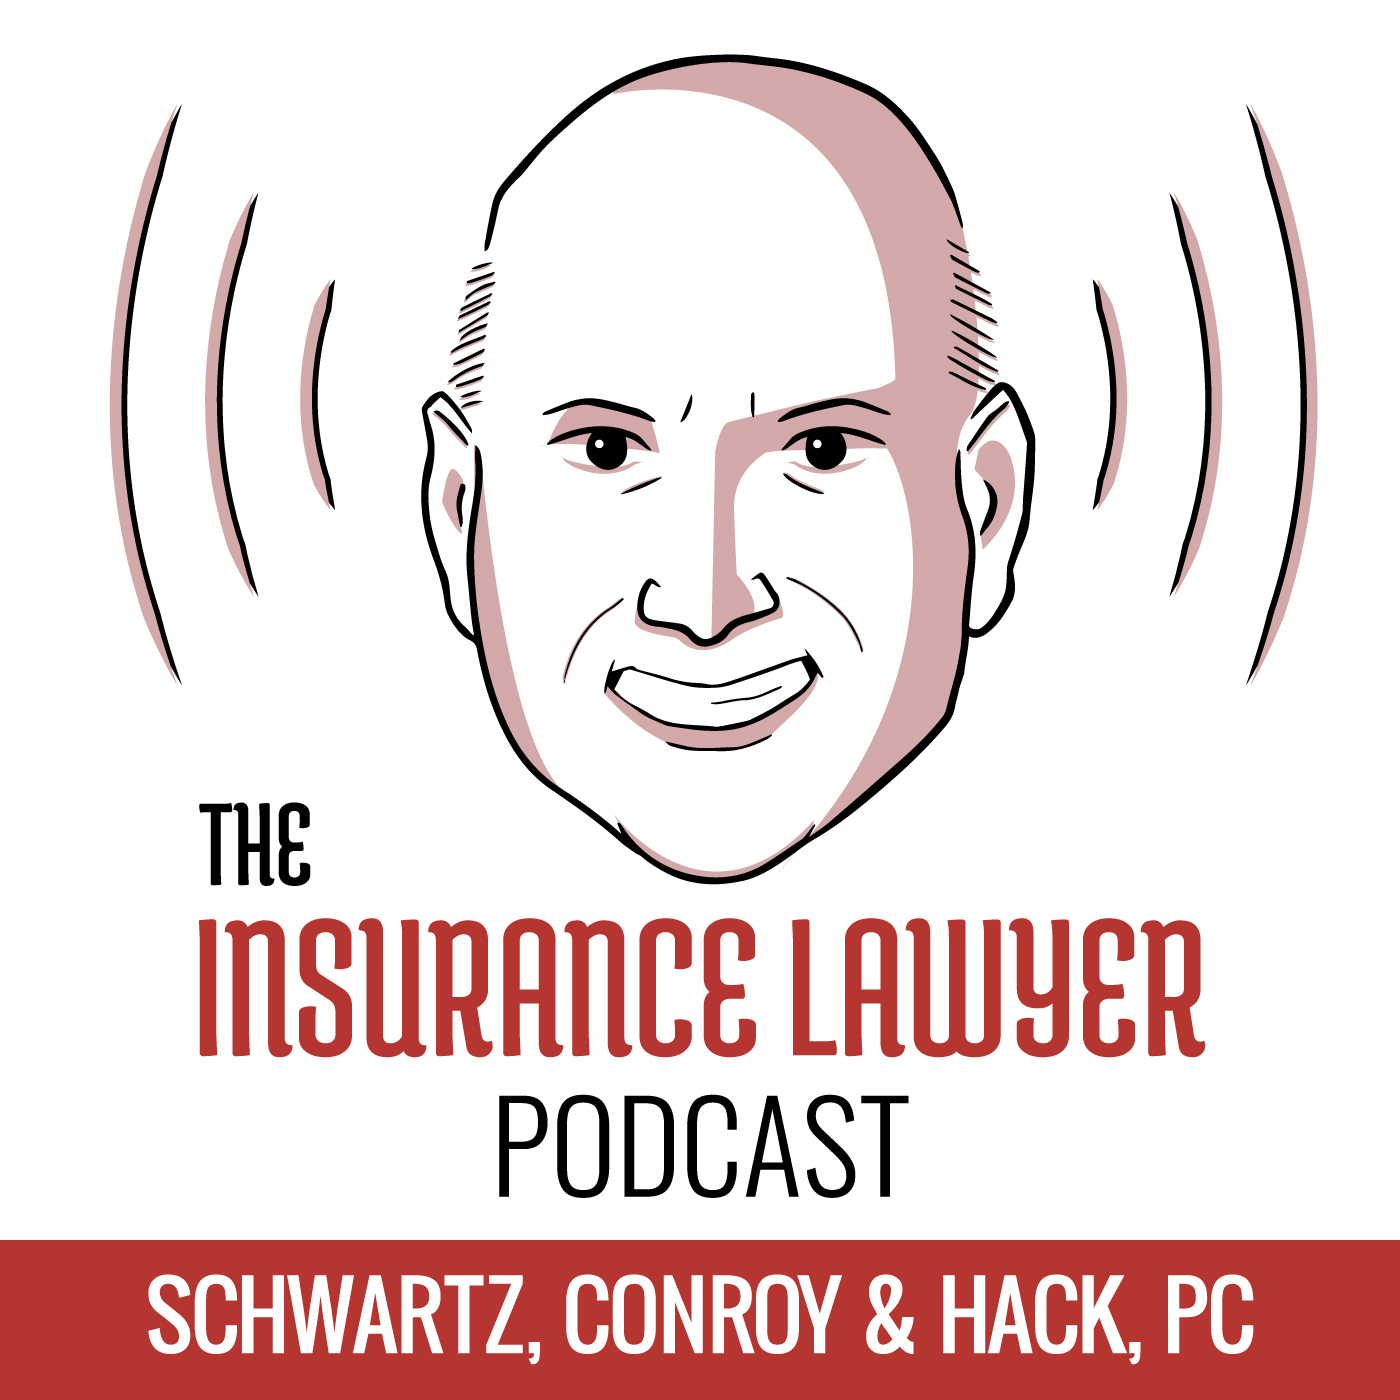 Business Insurance Coverage 101, Pt. 2: How Construction Insurance Policyholders Can Protect Themselves